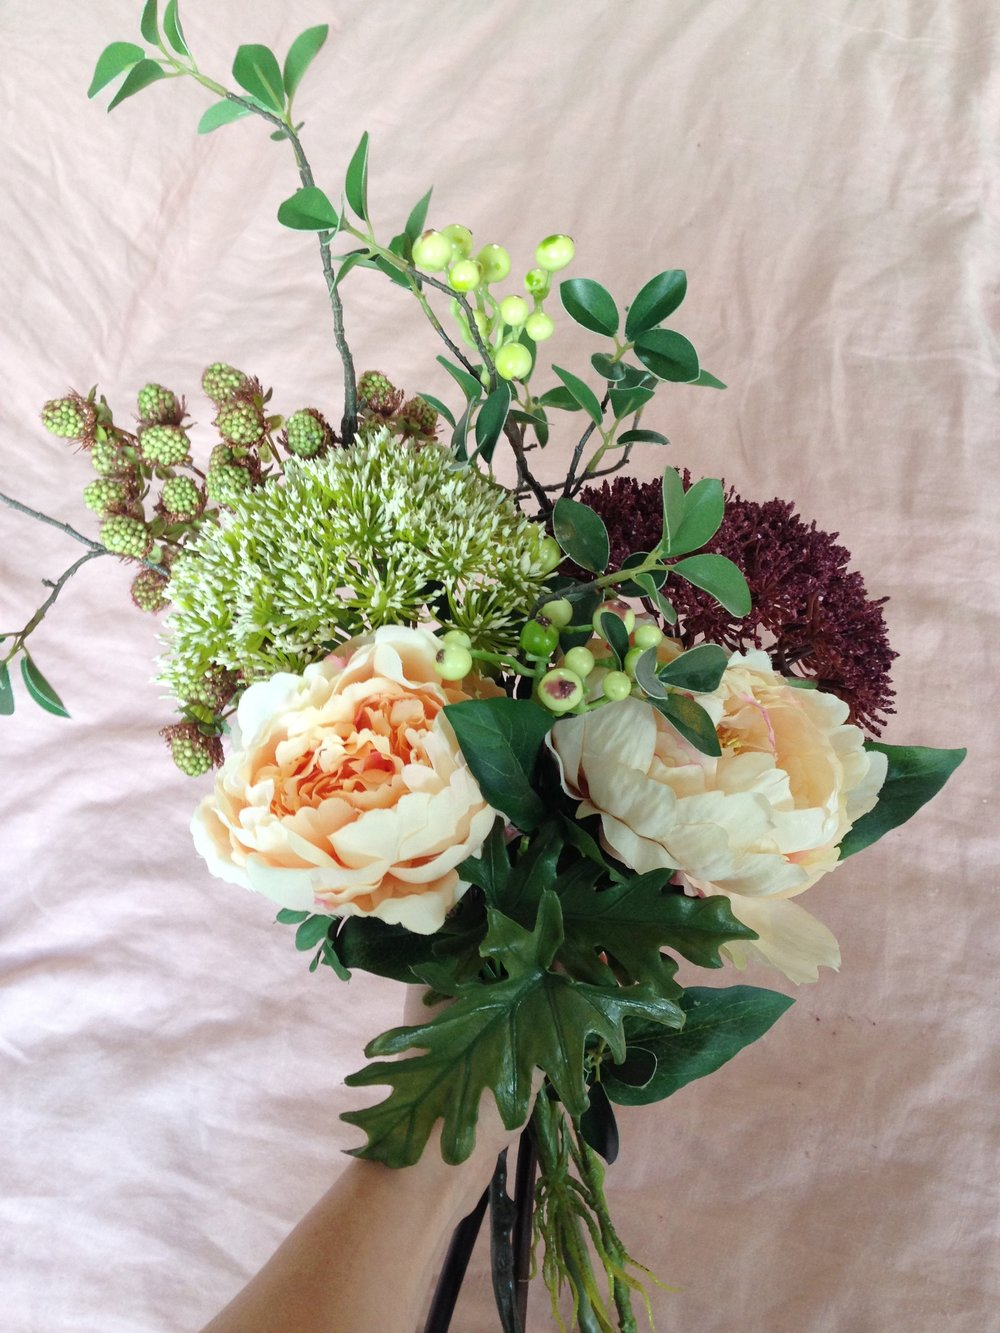 Fake it till you make it with abigail aherns top tips on faux fake it till you make it with abigail aherns top tips on faux flower styling gold is a neutral izmirmasajfo